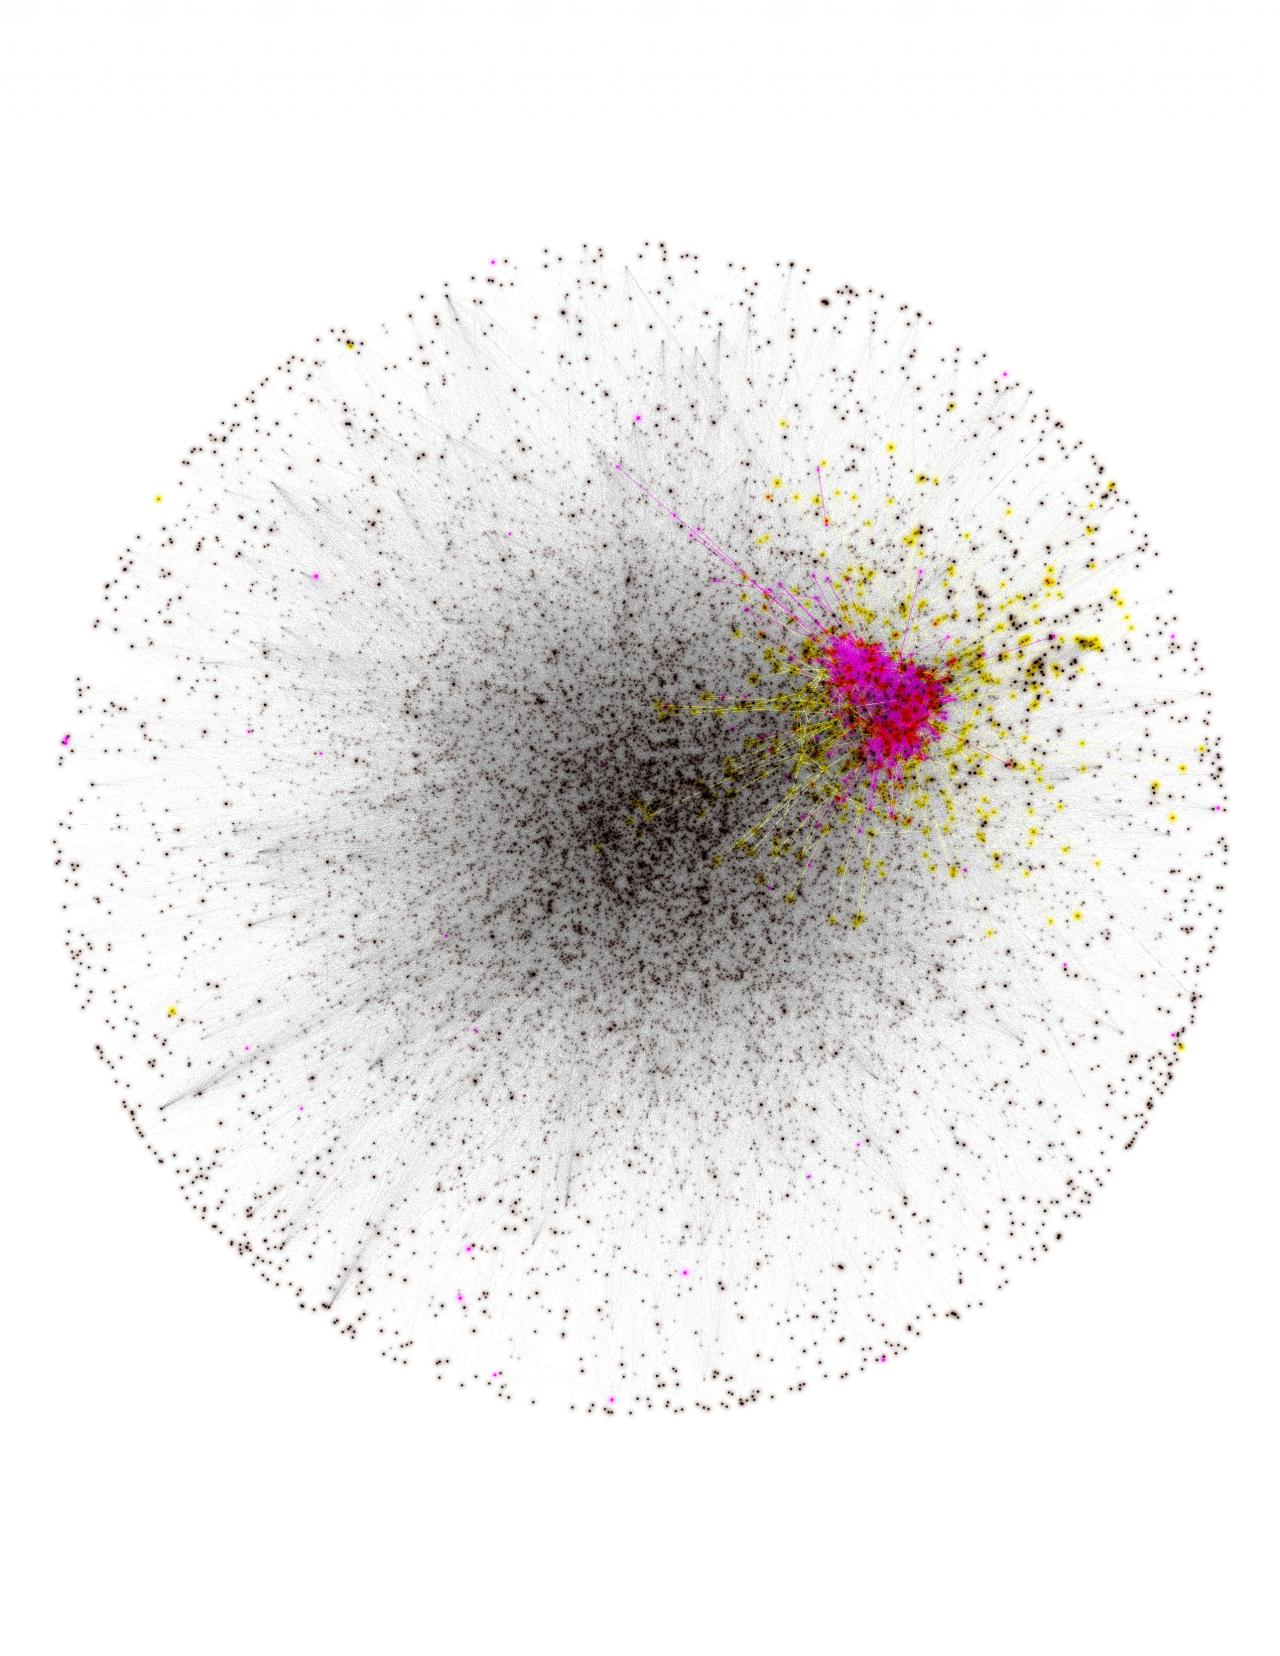 A visualization of a network is shown. The network looks like a ball. More edges and nodes accumulate in the center than further away from the center.